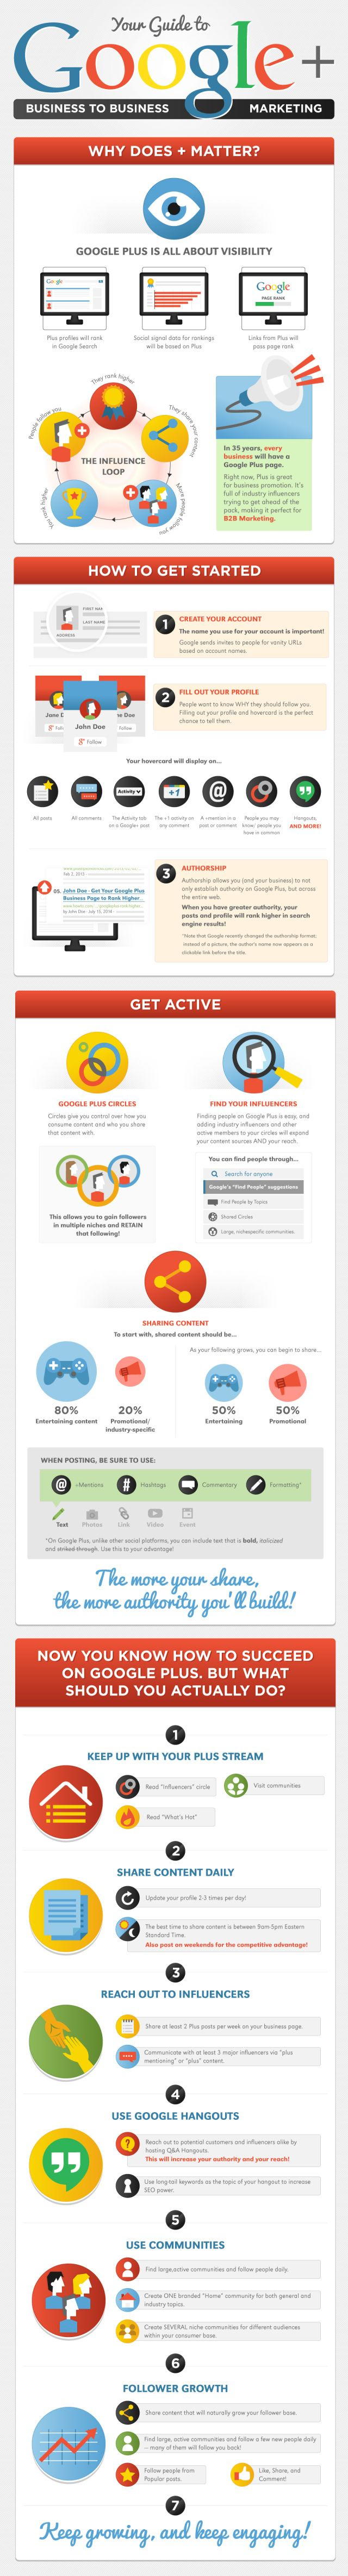 Google Plus voor B2B #infographic #guide